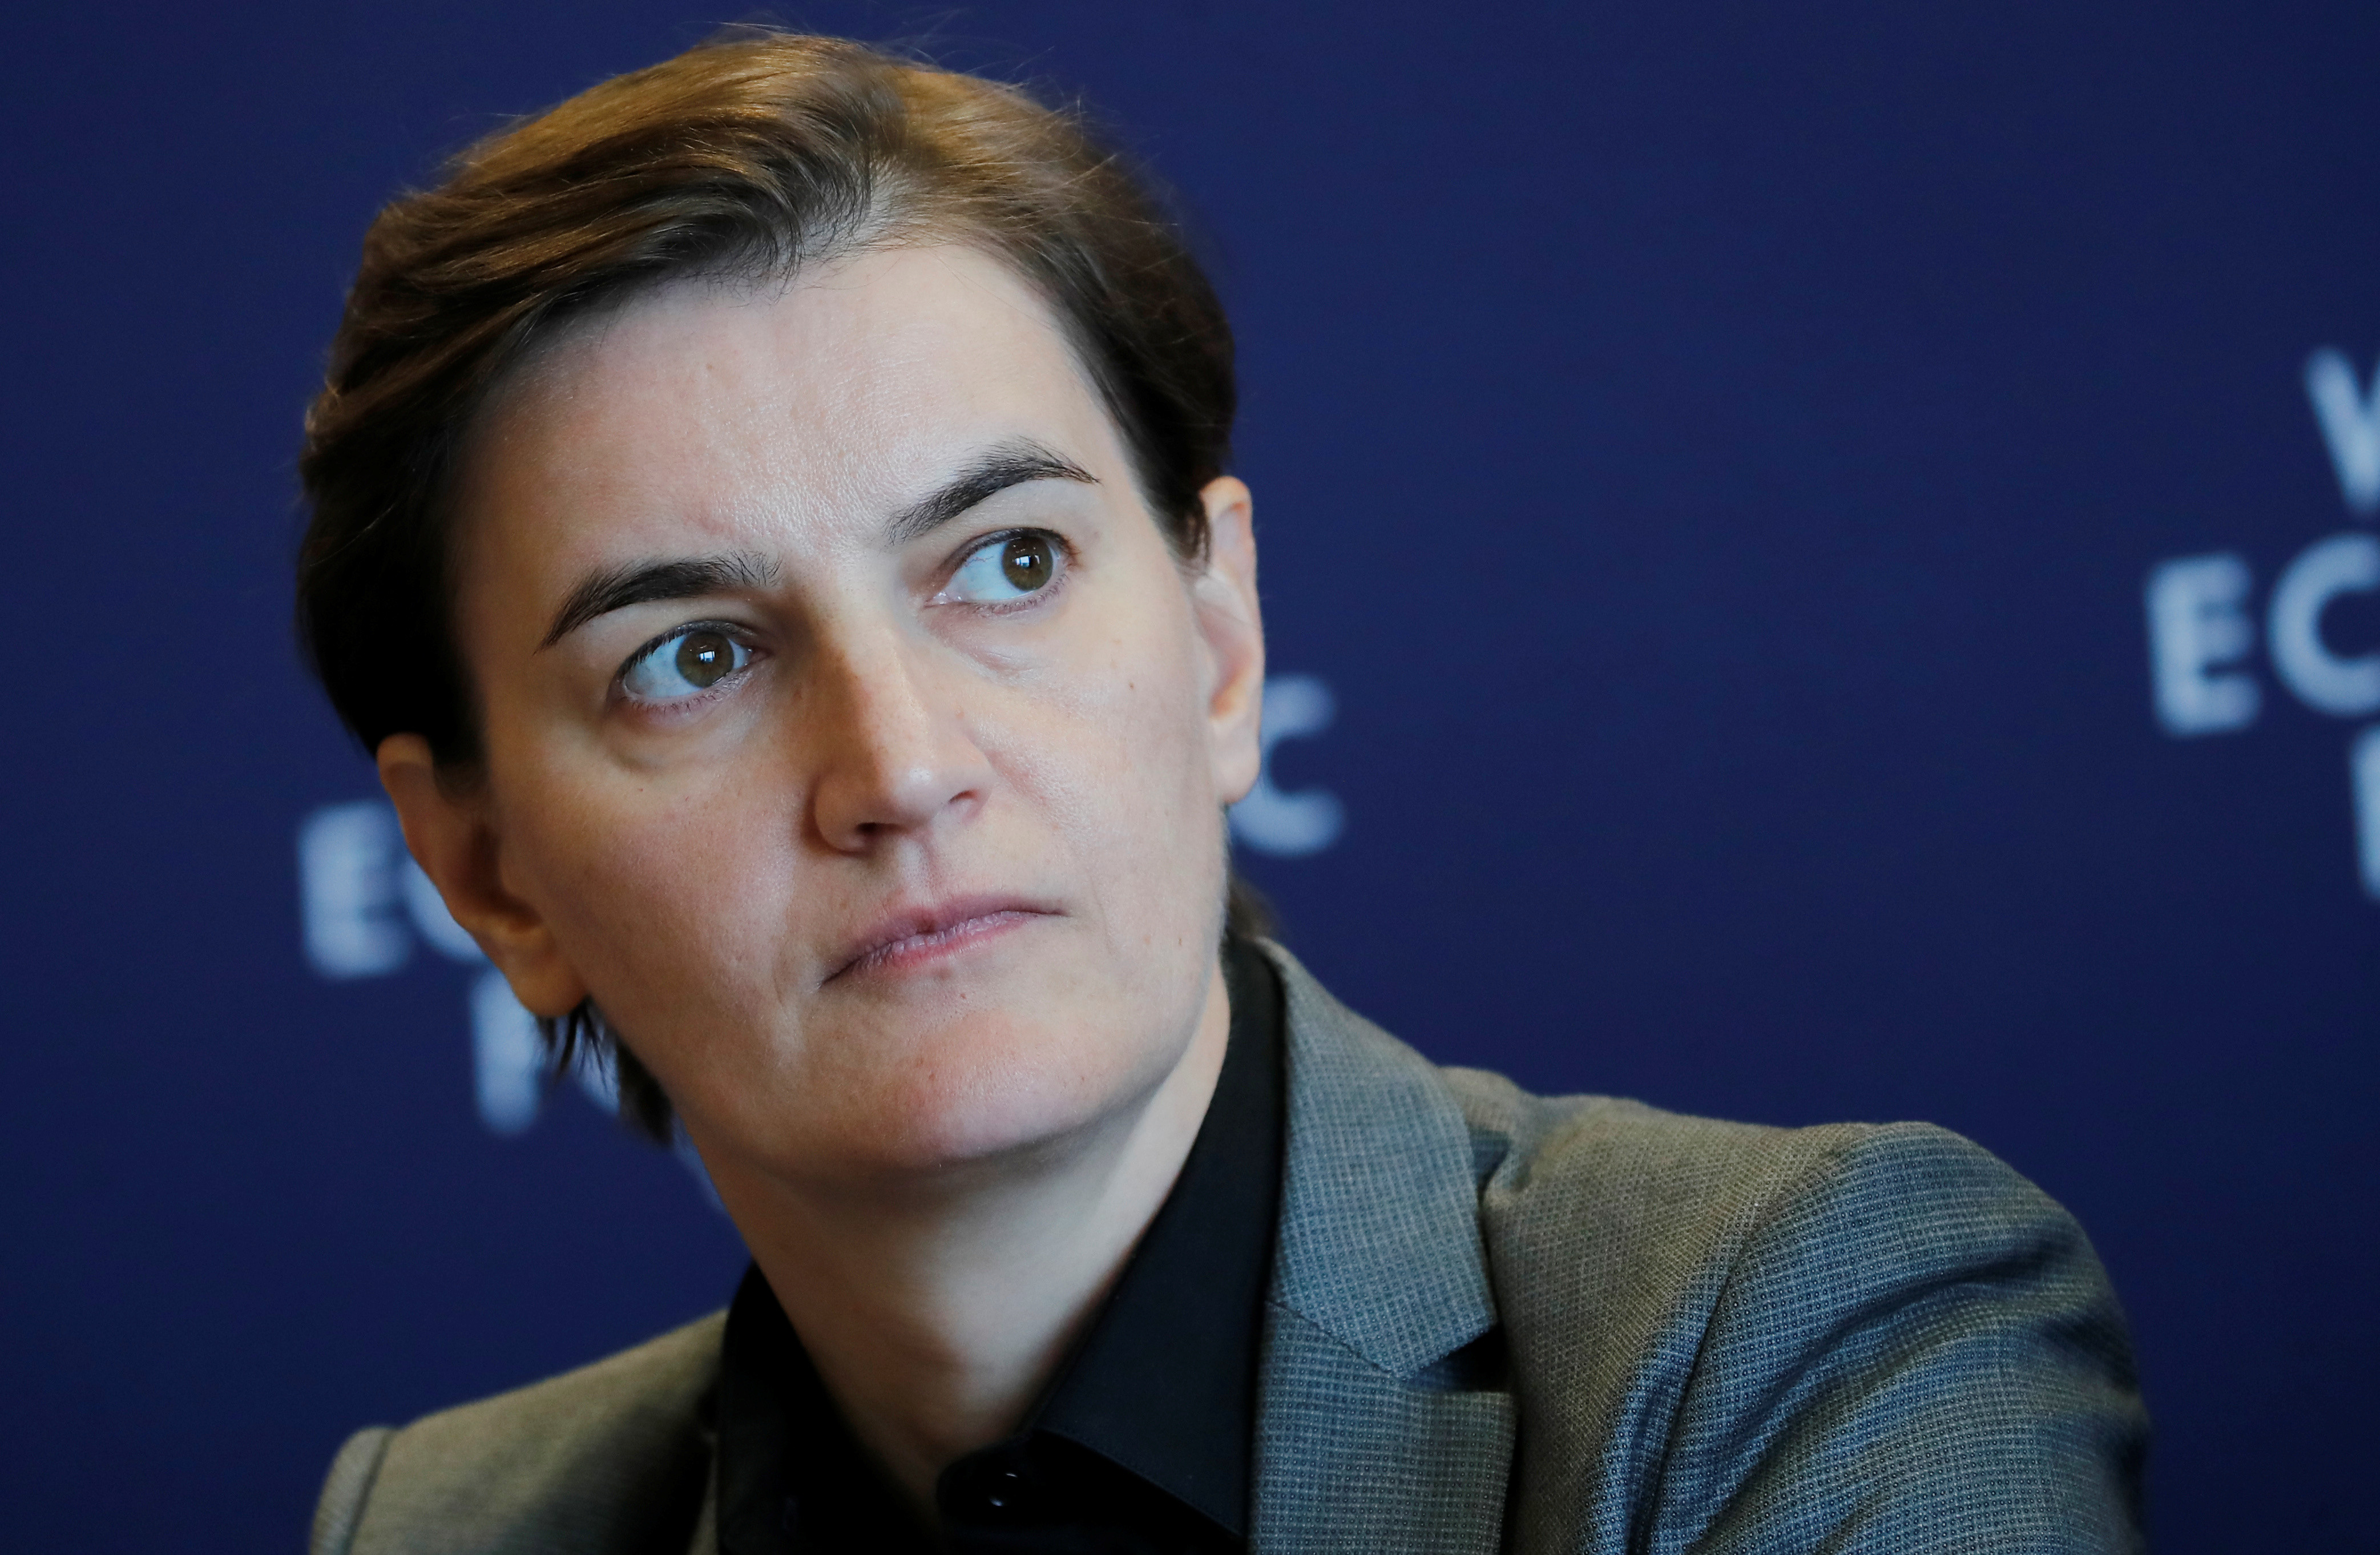 Ana Brnabić Prime Minister of Serbia attends a news conference after the Strategic Dialogue of the Western Balkans meeting at the World Economic Forum (WEF) in Cologny near Geneva, Switzerland, October 2, 2018. REUTERS/Denis Balibouse - RC12FCD49D30